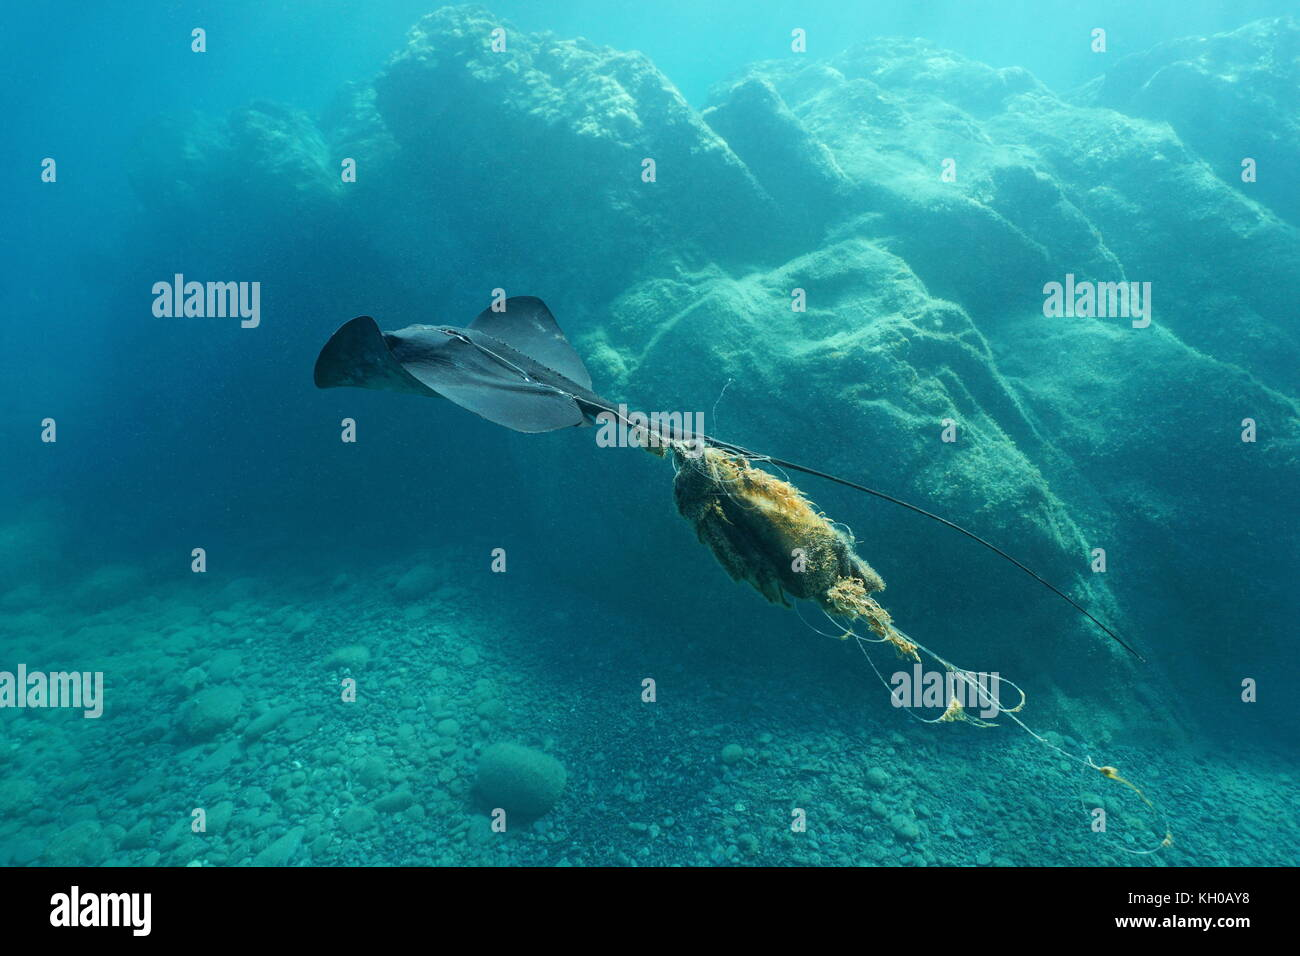 A stingray swims underwater injured and tangled by a fishing line, Mediterranean sea, Costa Brava, Catalonia, Spain - Stock Image